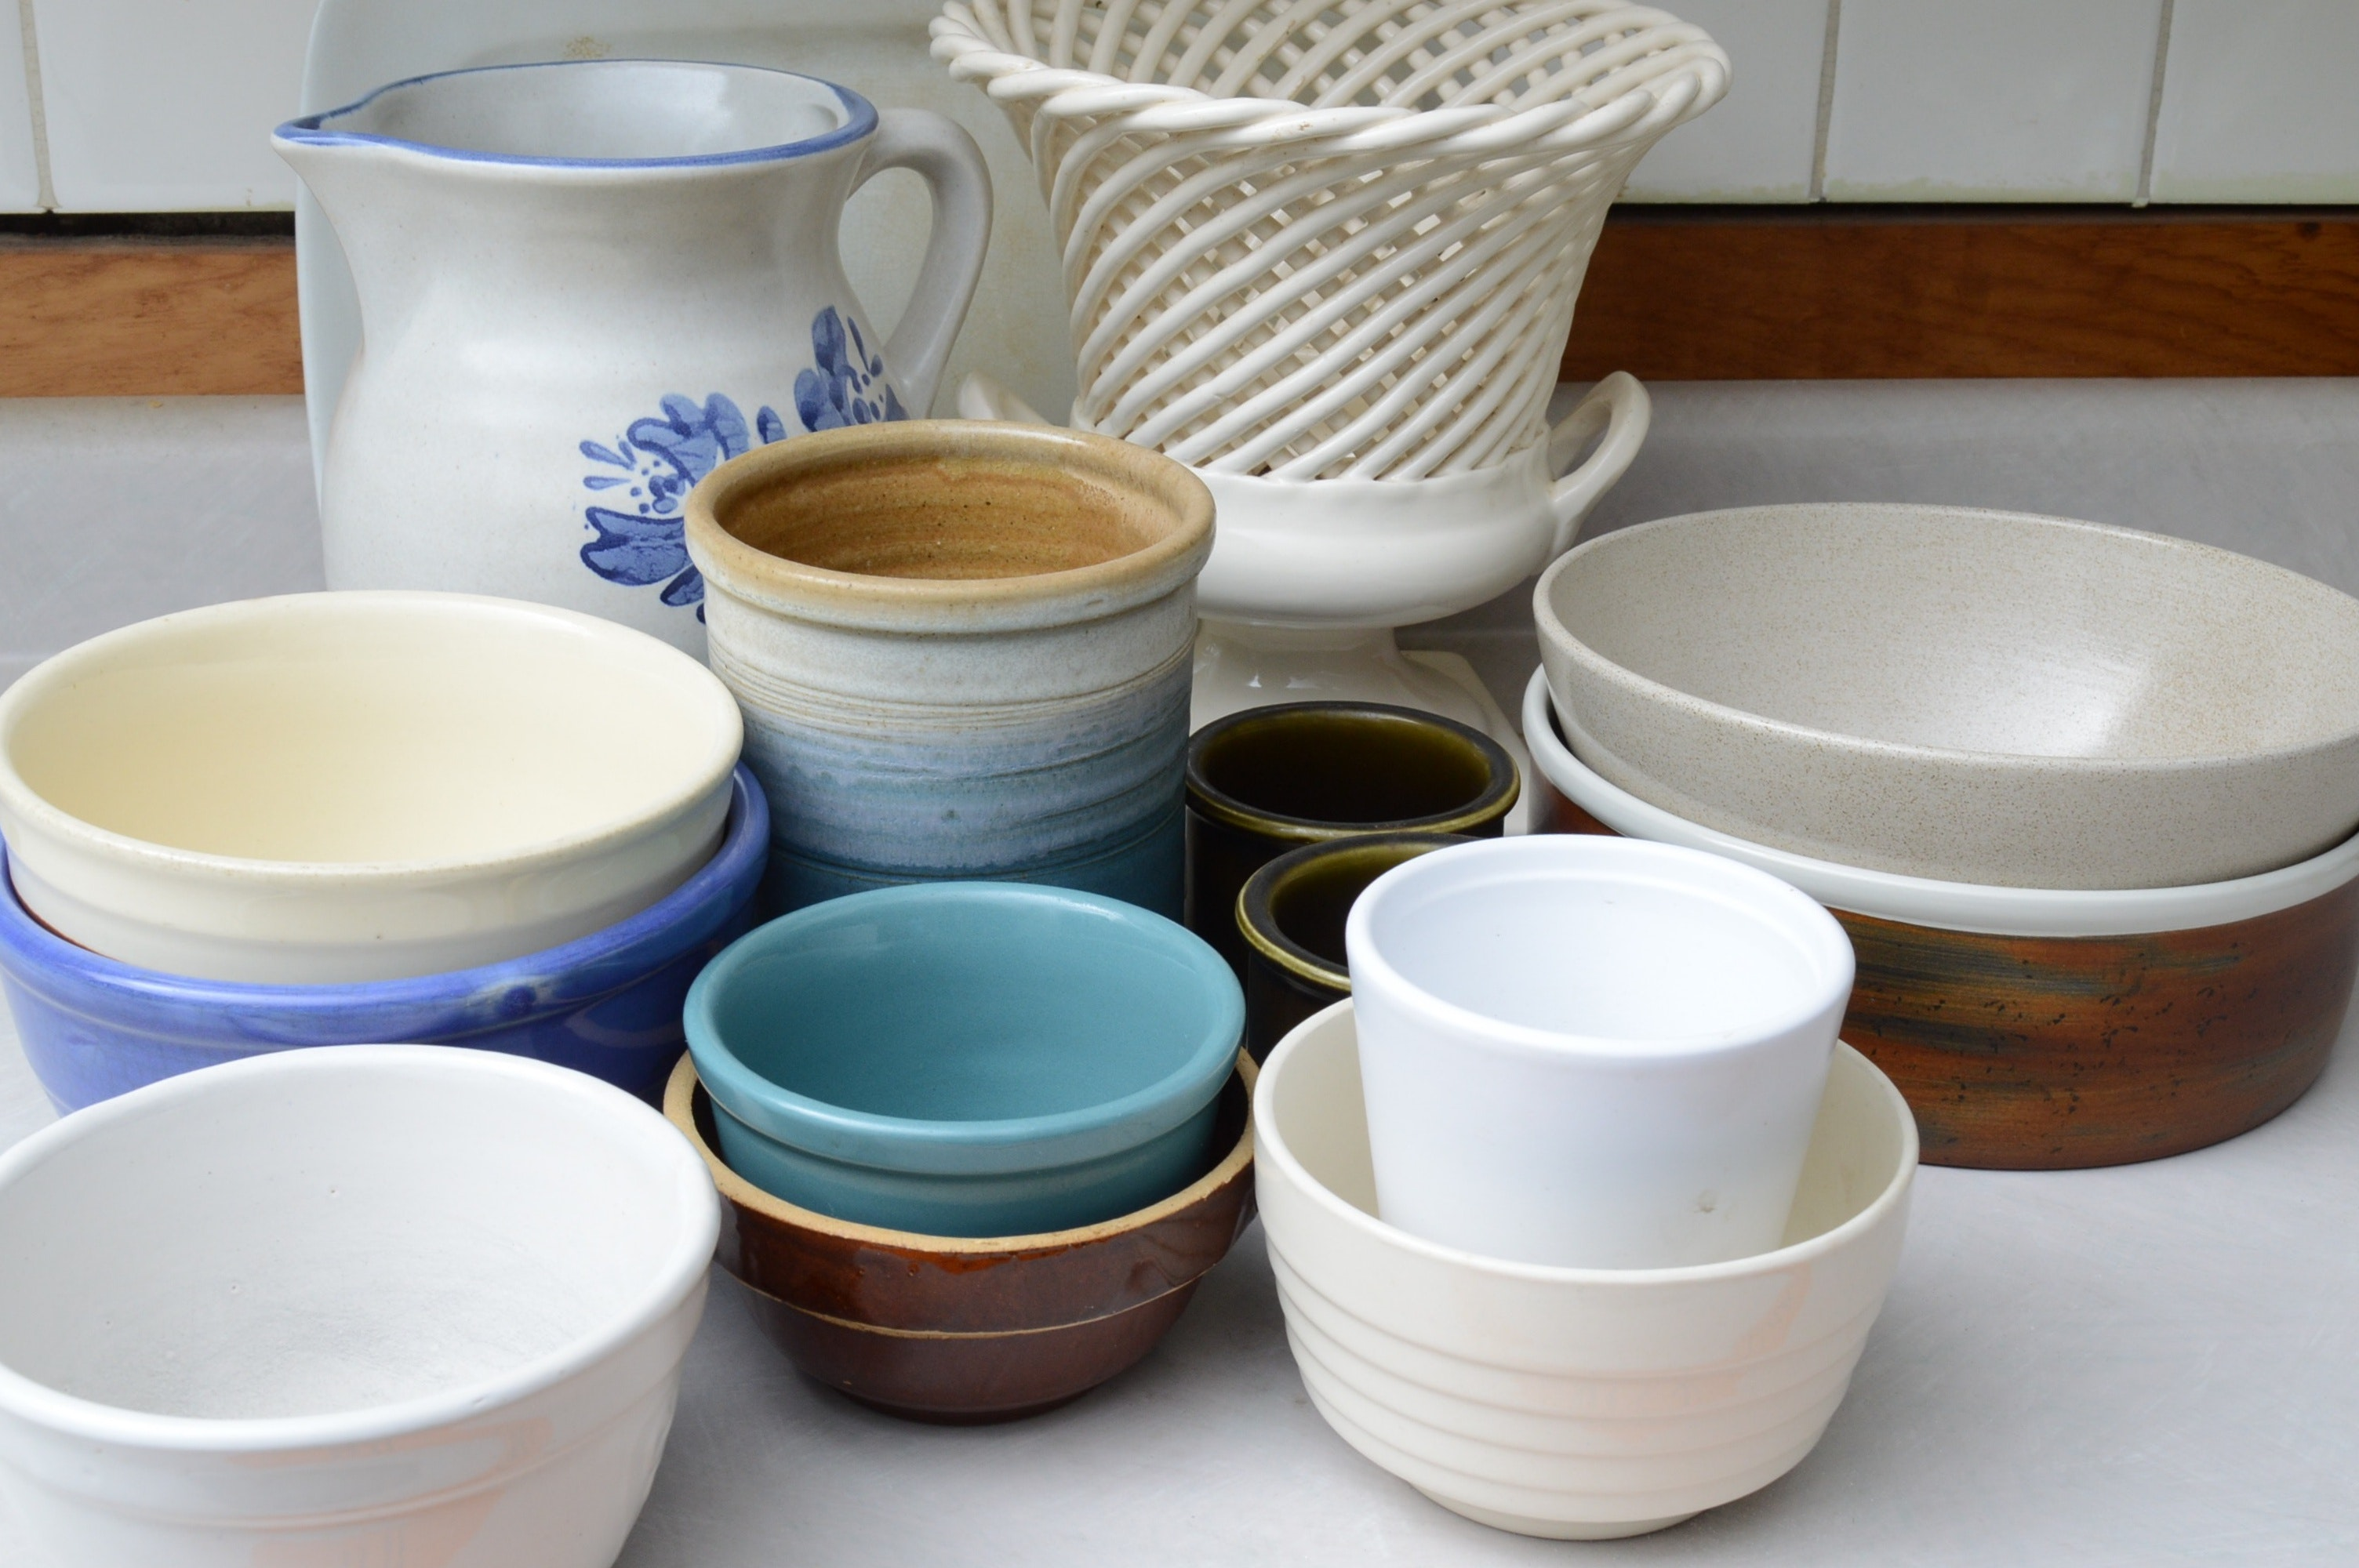 Ironstone Platter and Mixed Pottery Bowls